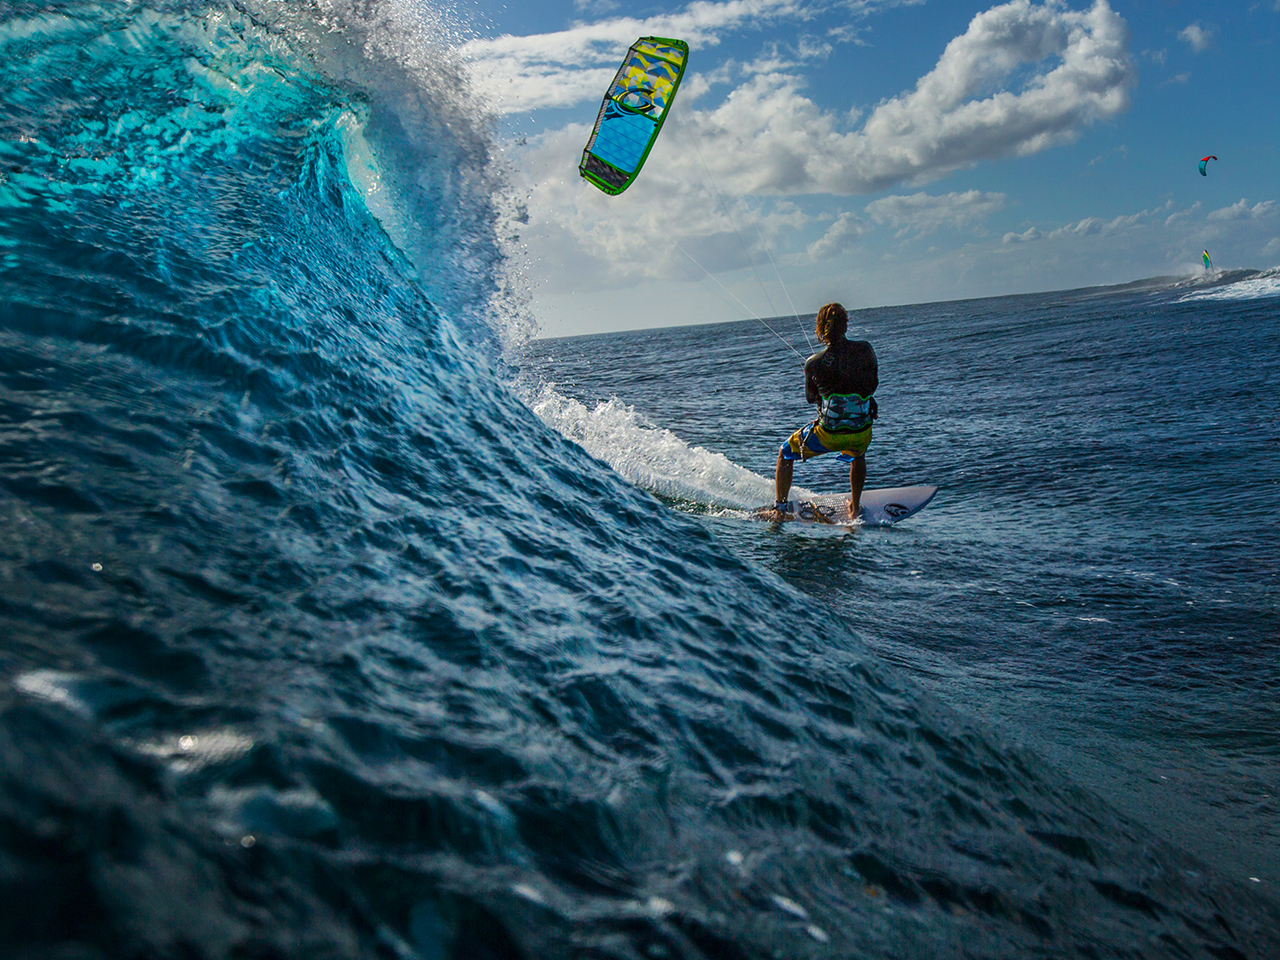 kitesurf wallpaper image - Alberto Rondina at Le Morne Mauritius - surfing a nice tropical wave. - in resolution: Standard 4:3 1280 X 960